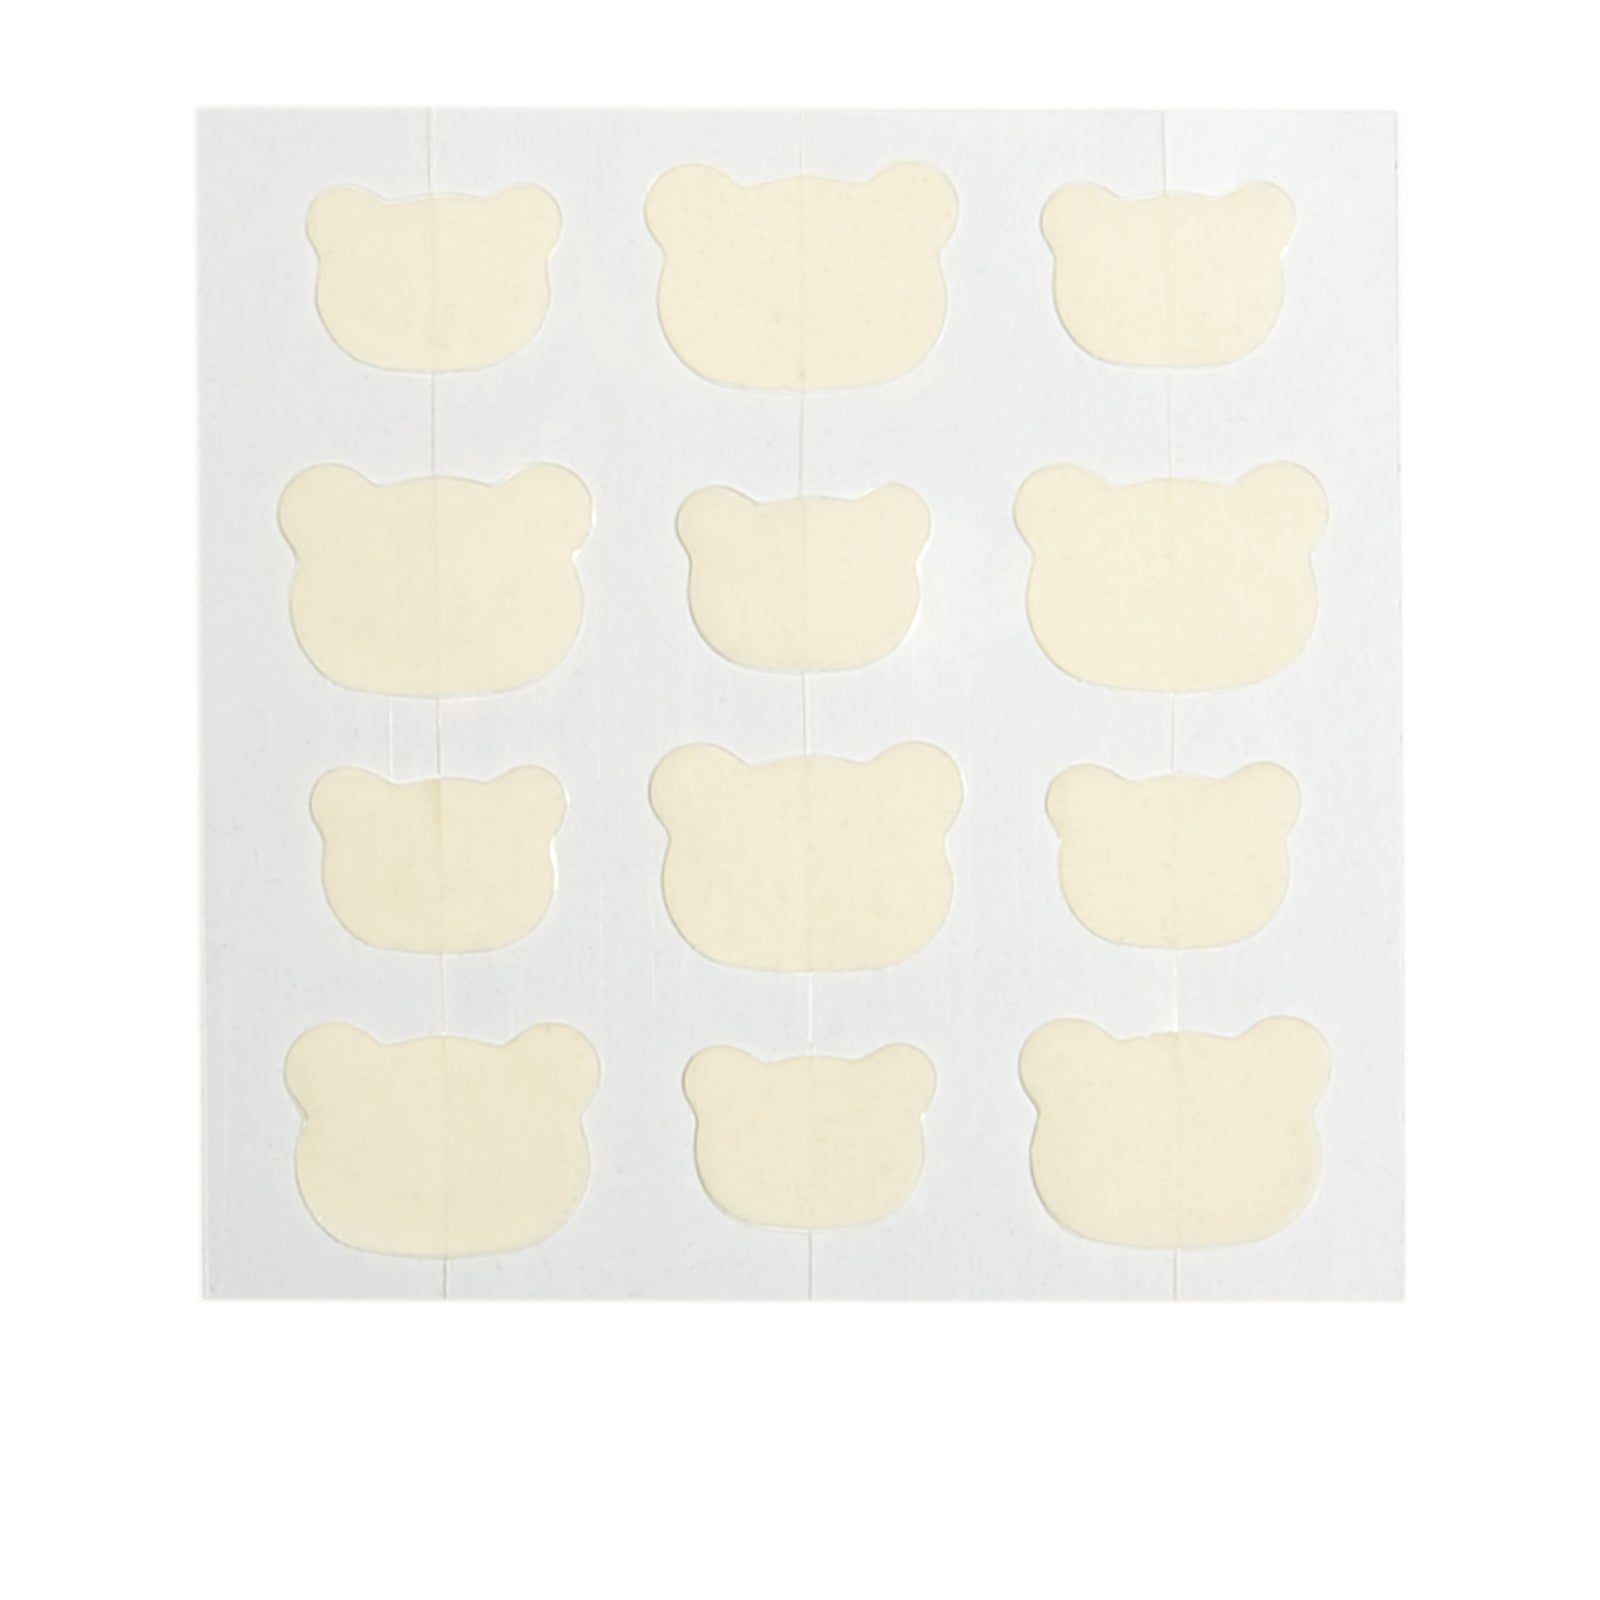 Rilakkuma Blemish Protection Patch with Hydrocolloid